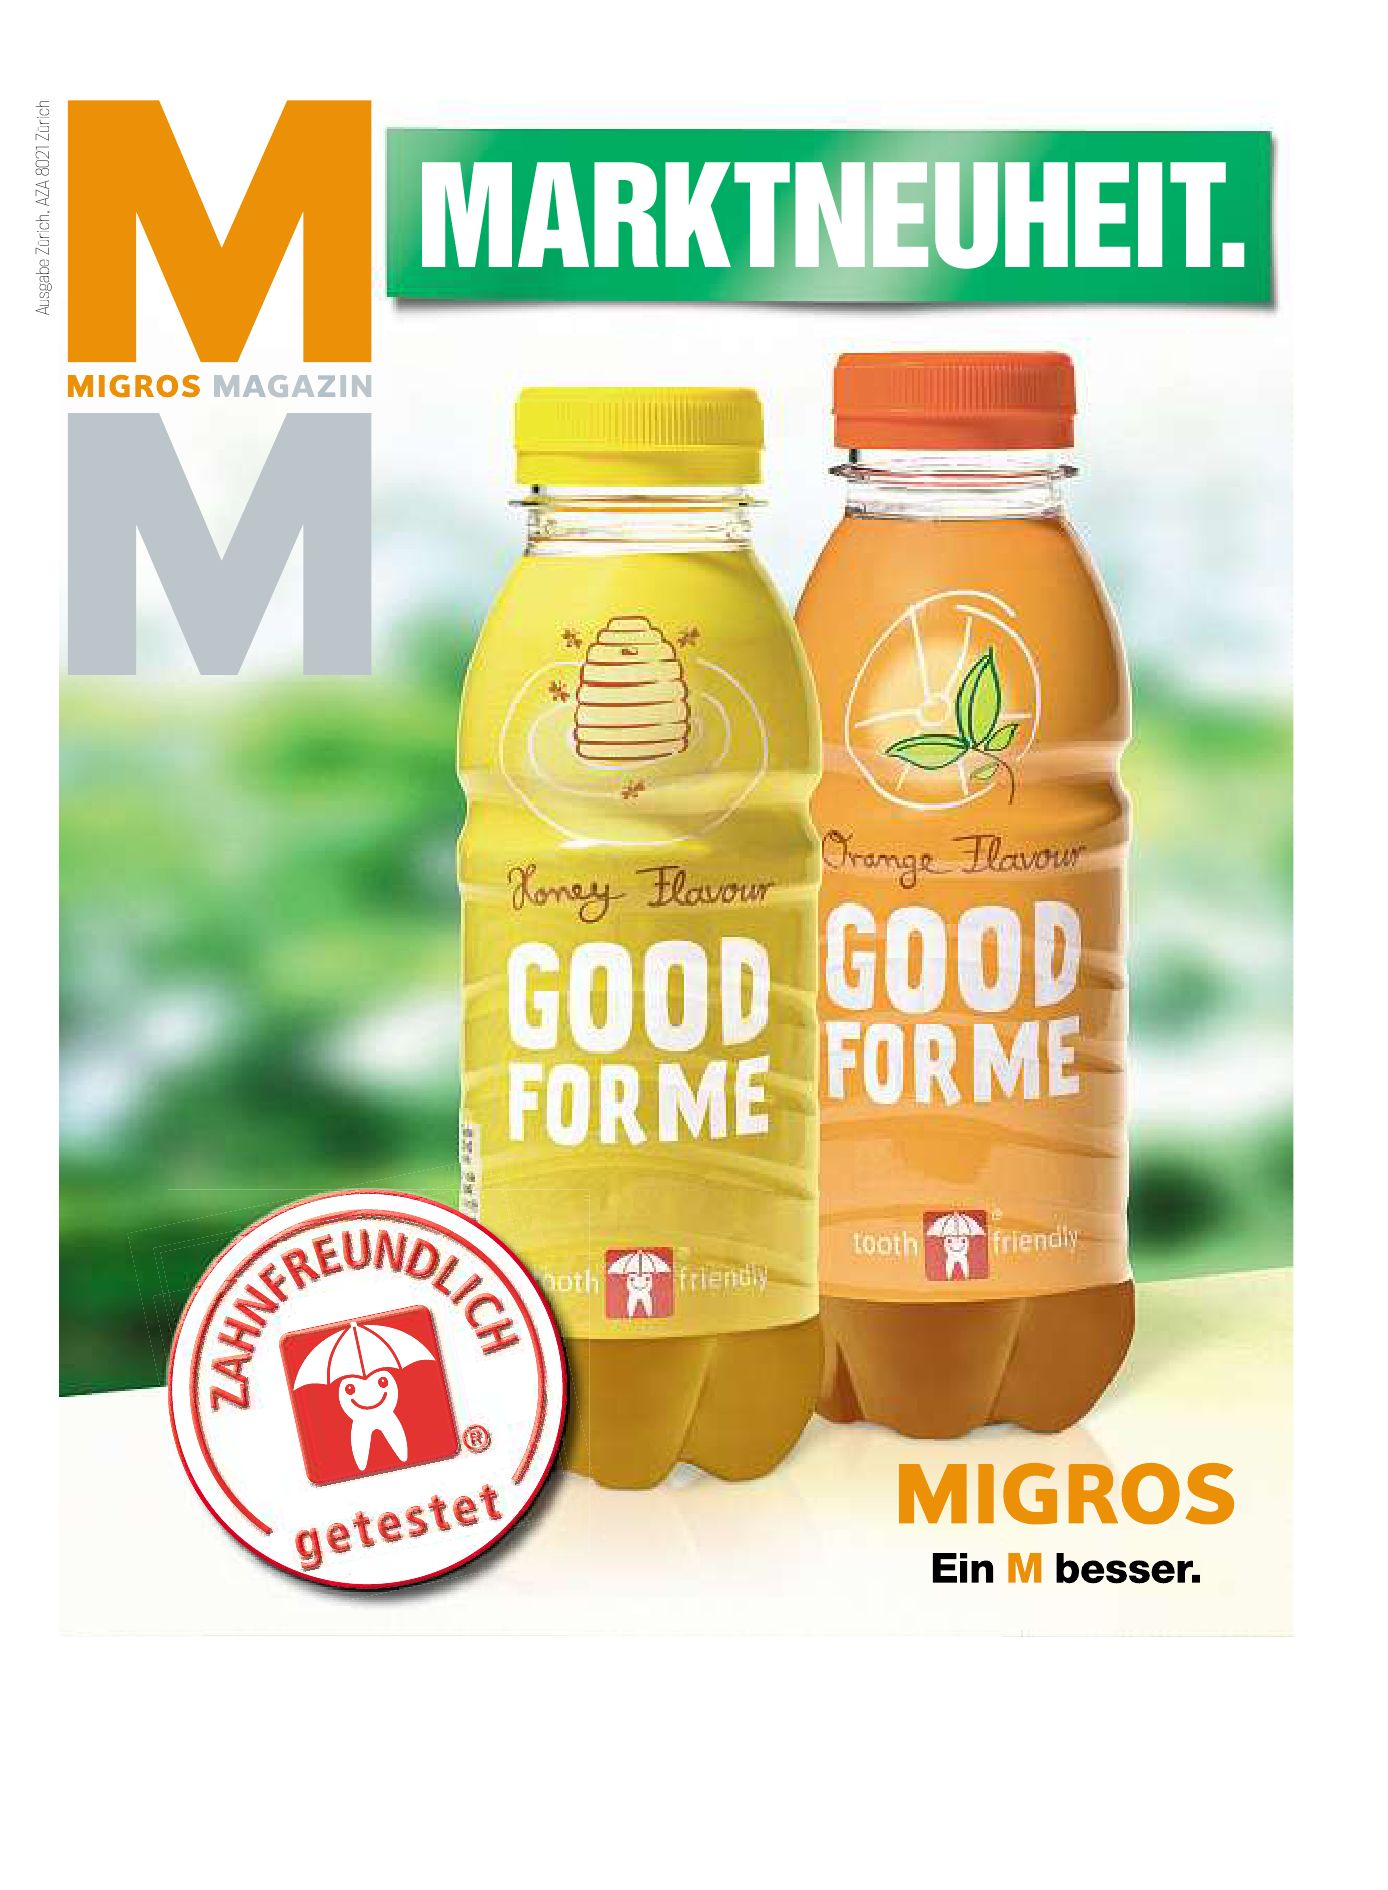 Migros Magazin 44 2009 d VS by Migros-Genossenschafts-Bund - issuu